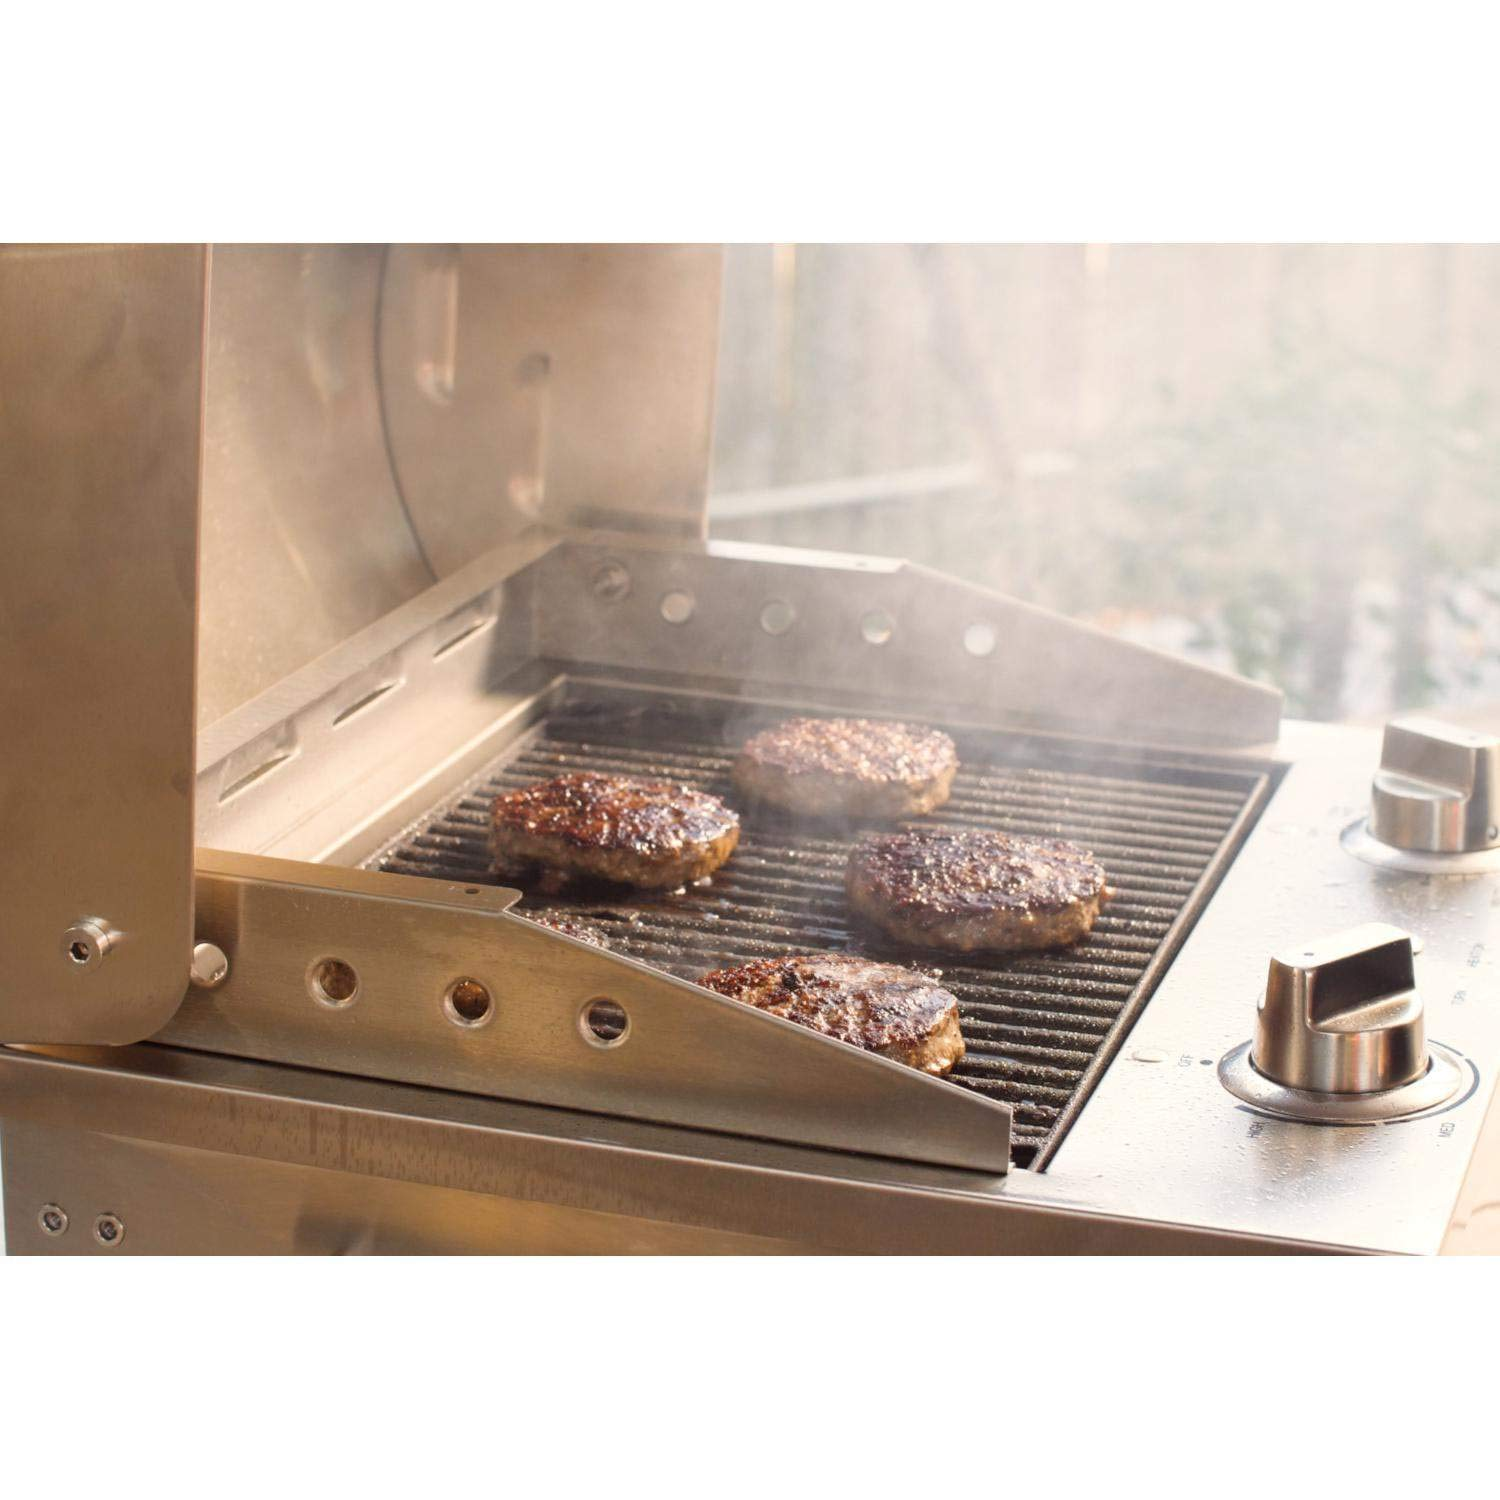 Coyote C1EL120SM 19 Electric Grill with 156 sq. in. Cooking Area 5000 Hour Heating Element 304 Stainless Steel Teflon Coated Cooking Surface Ceramic Flavorizer and Removable Frame